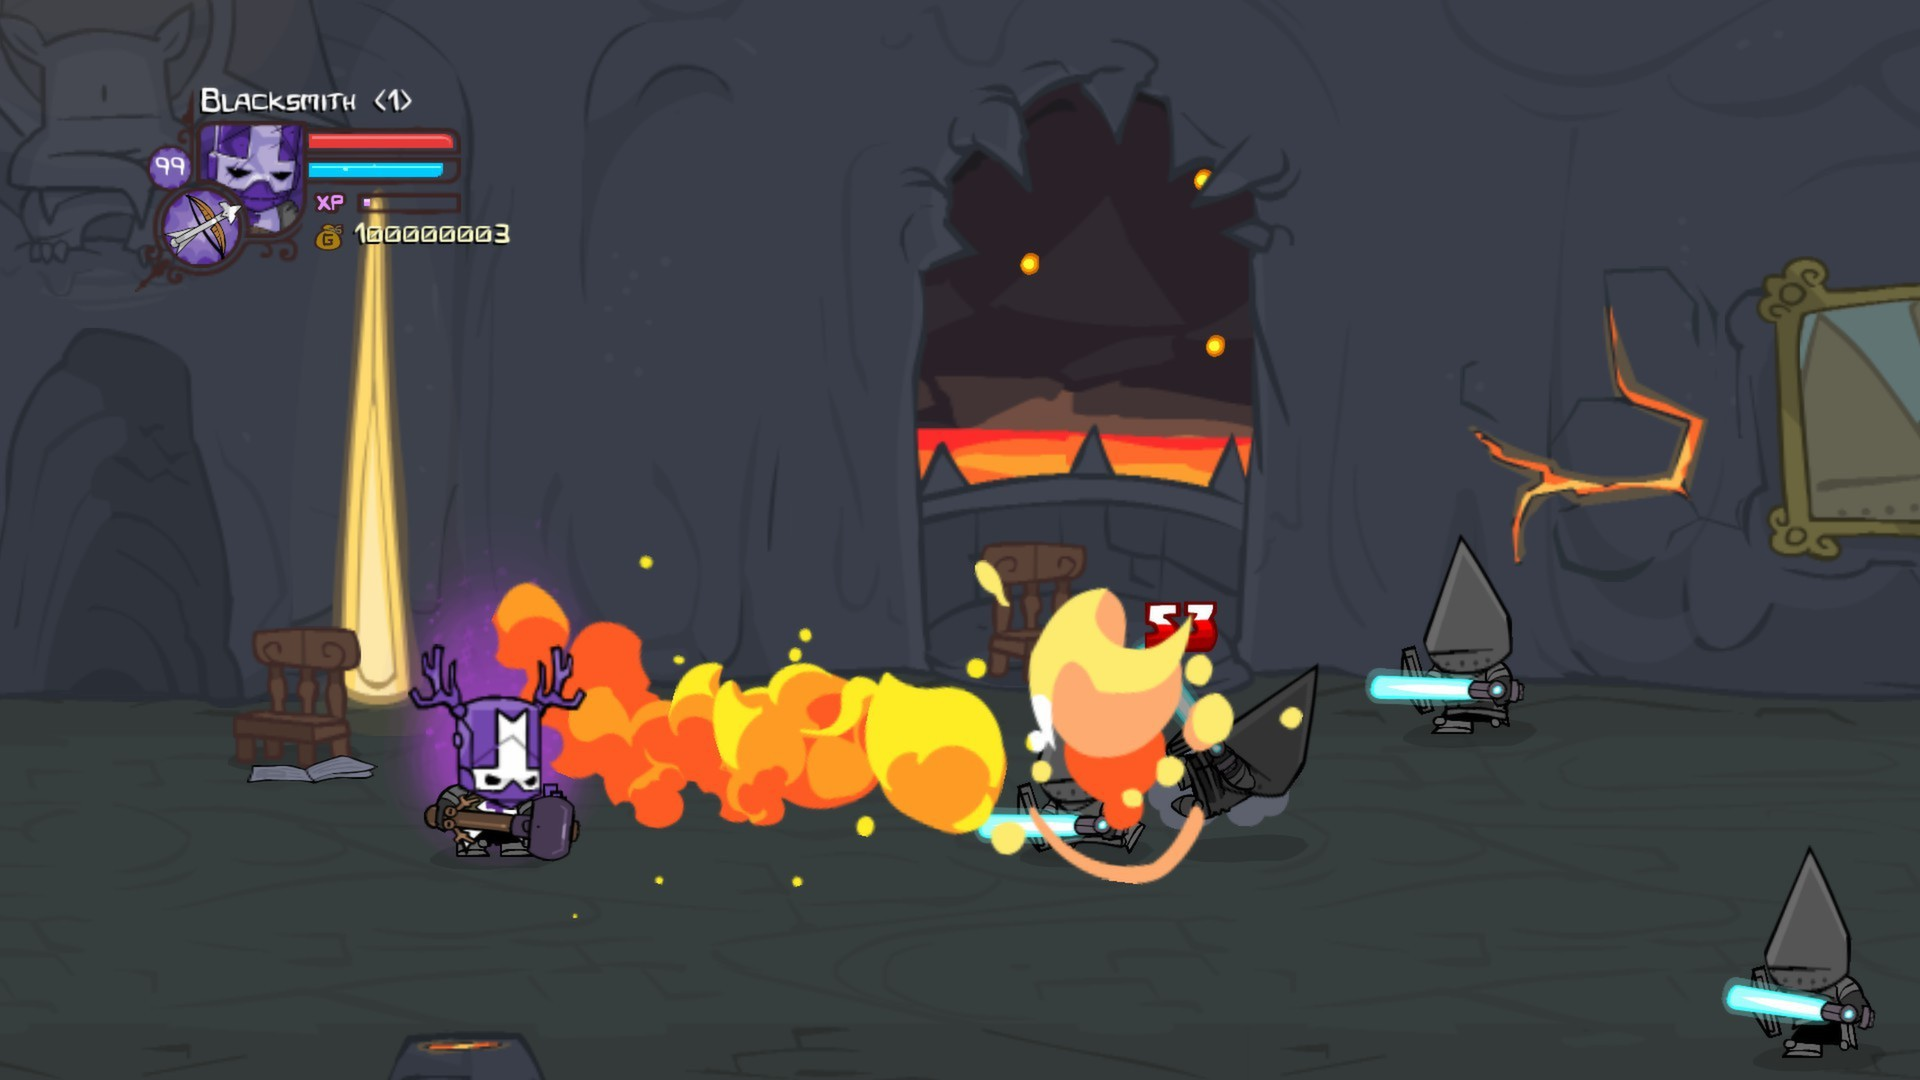 Castle Crashers - Blacksmith Pack PC Fiyatları